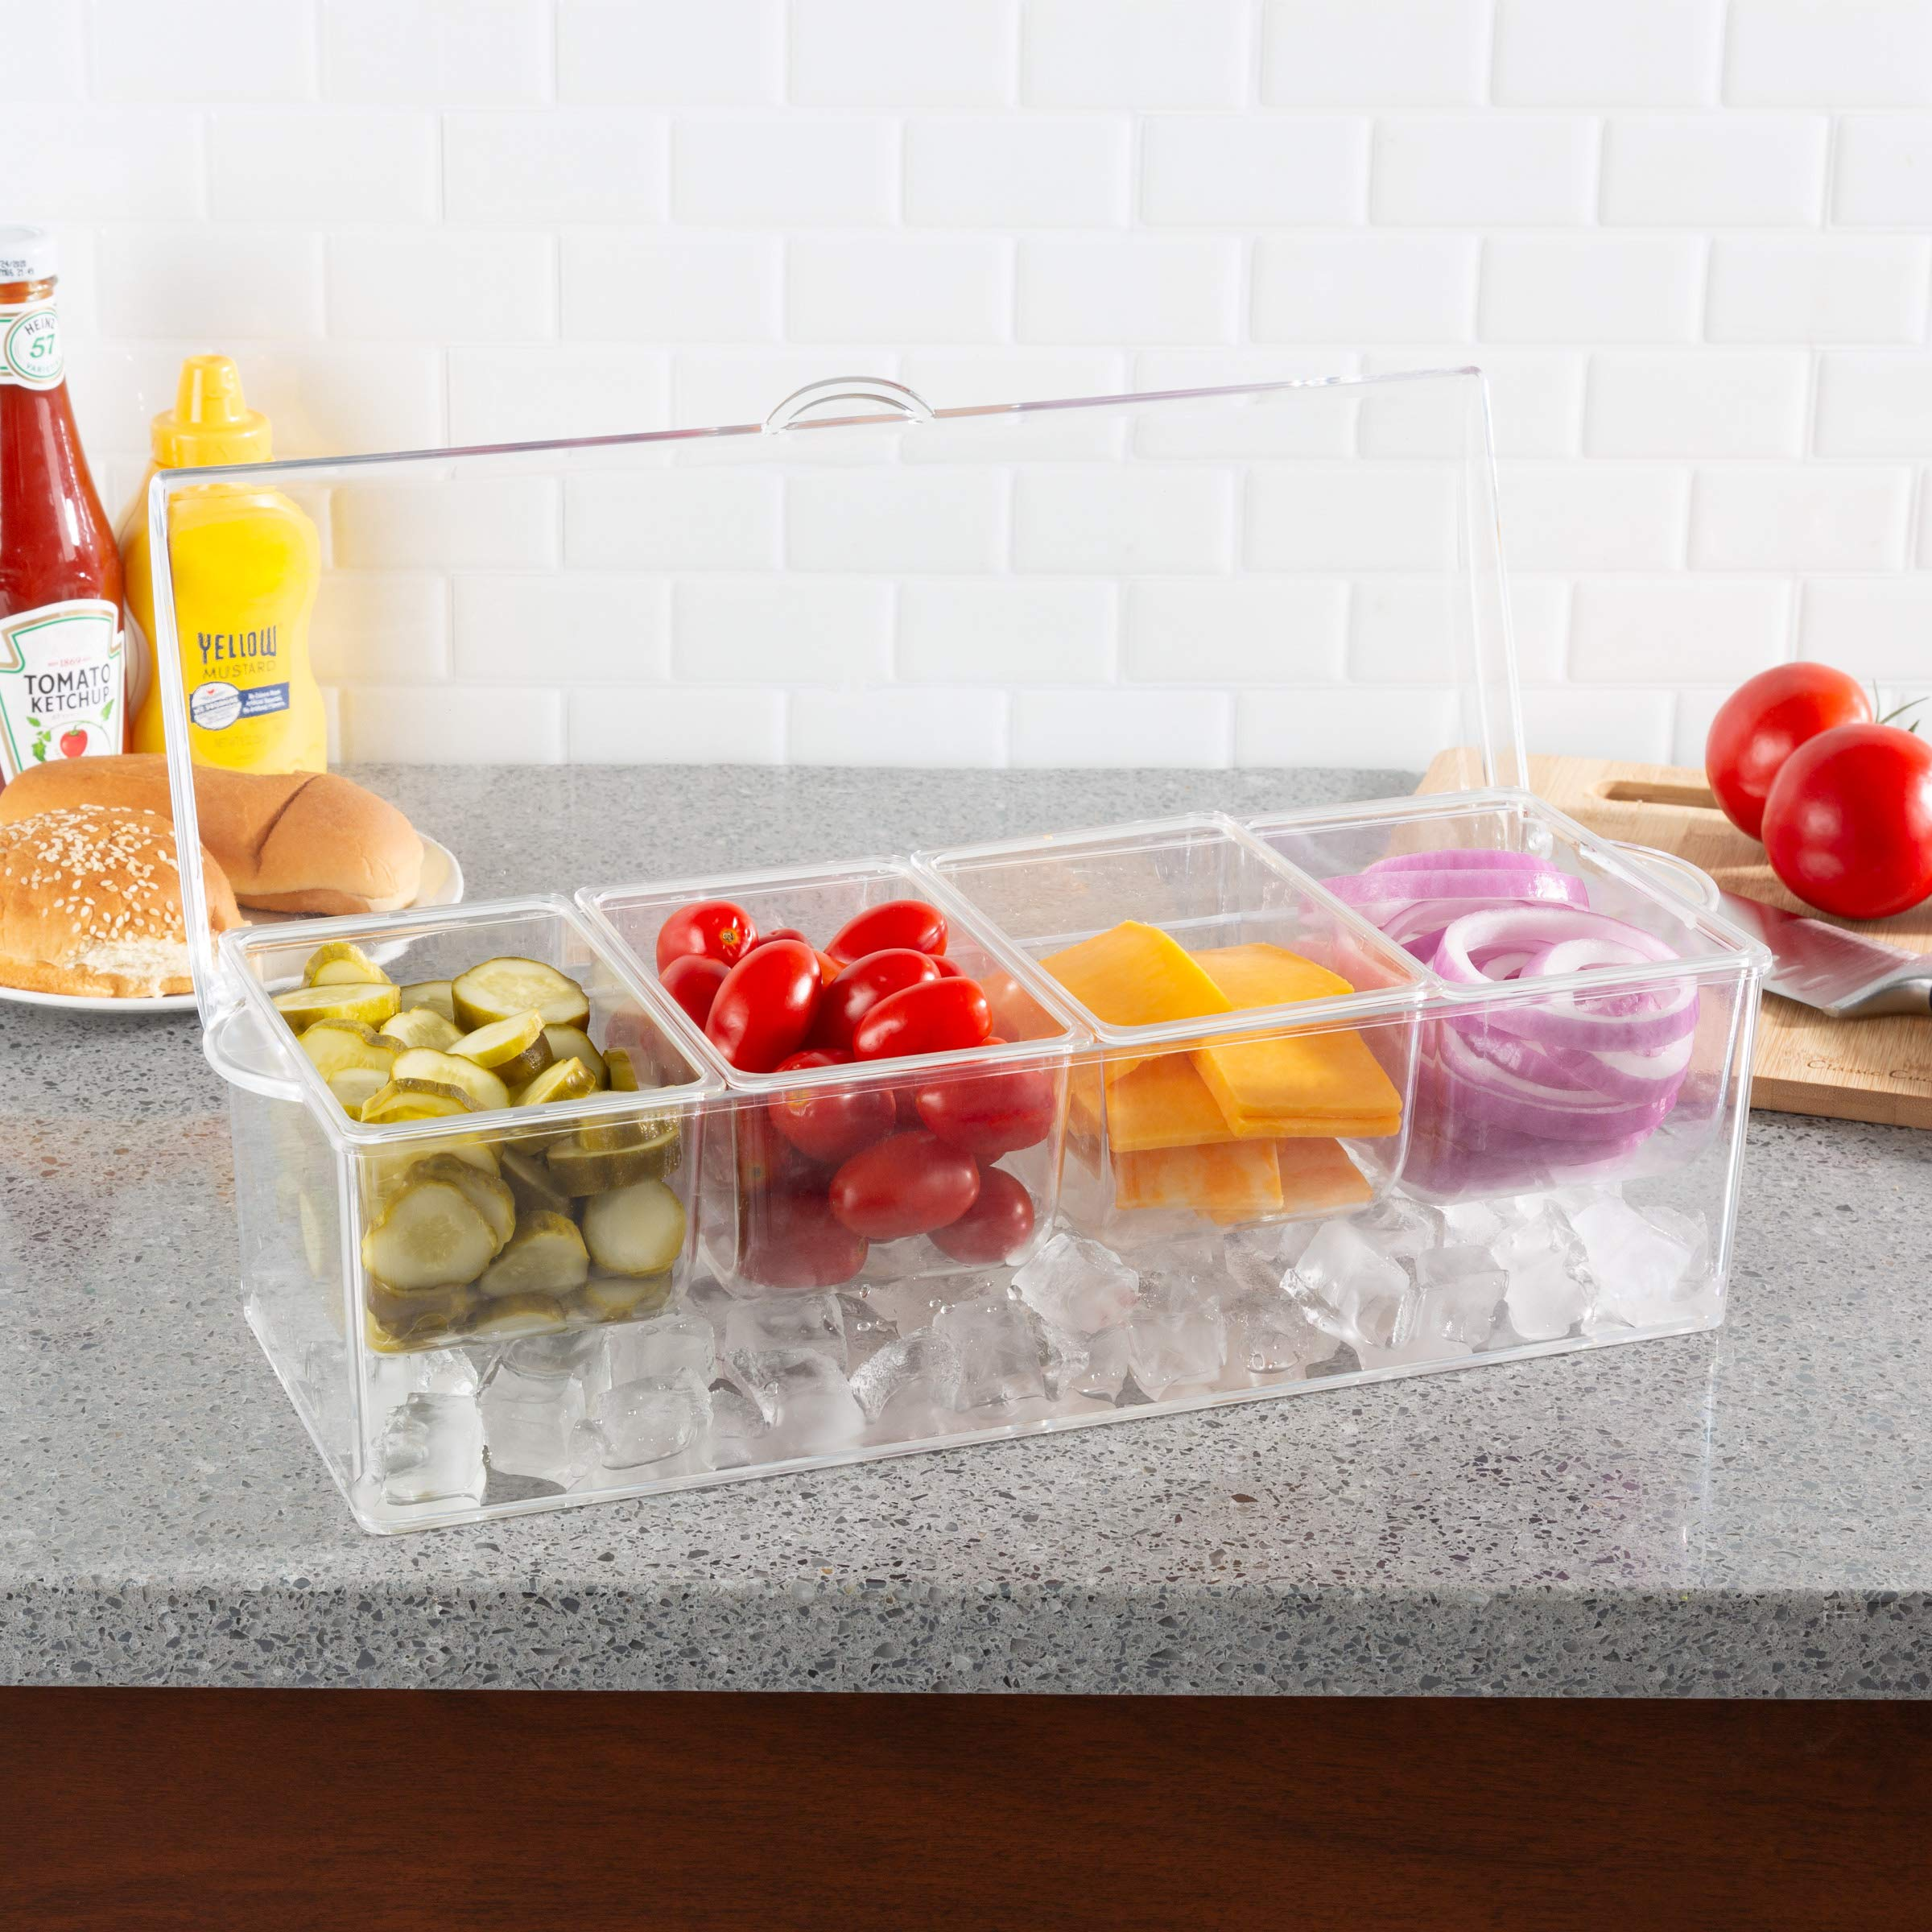 Classic Cuisine 82-KIT1084 Cold Condiment Tray Chilled Serving Container with Ice Chamber, 4 Compartments, Lid-For Dips, Dressings, Fruit, Veggies, and More, Clear